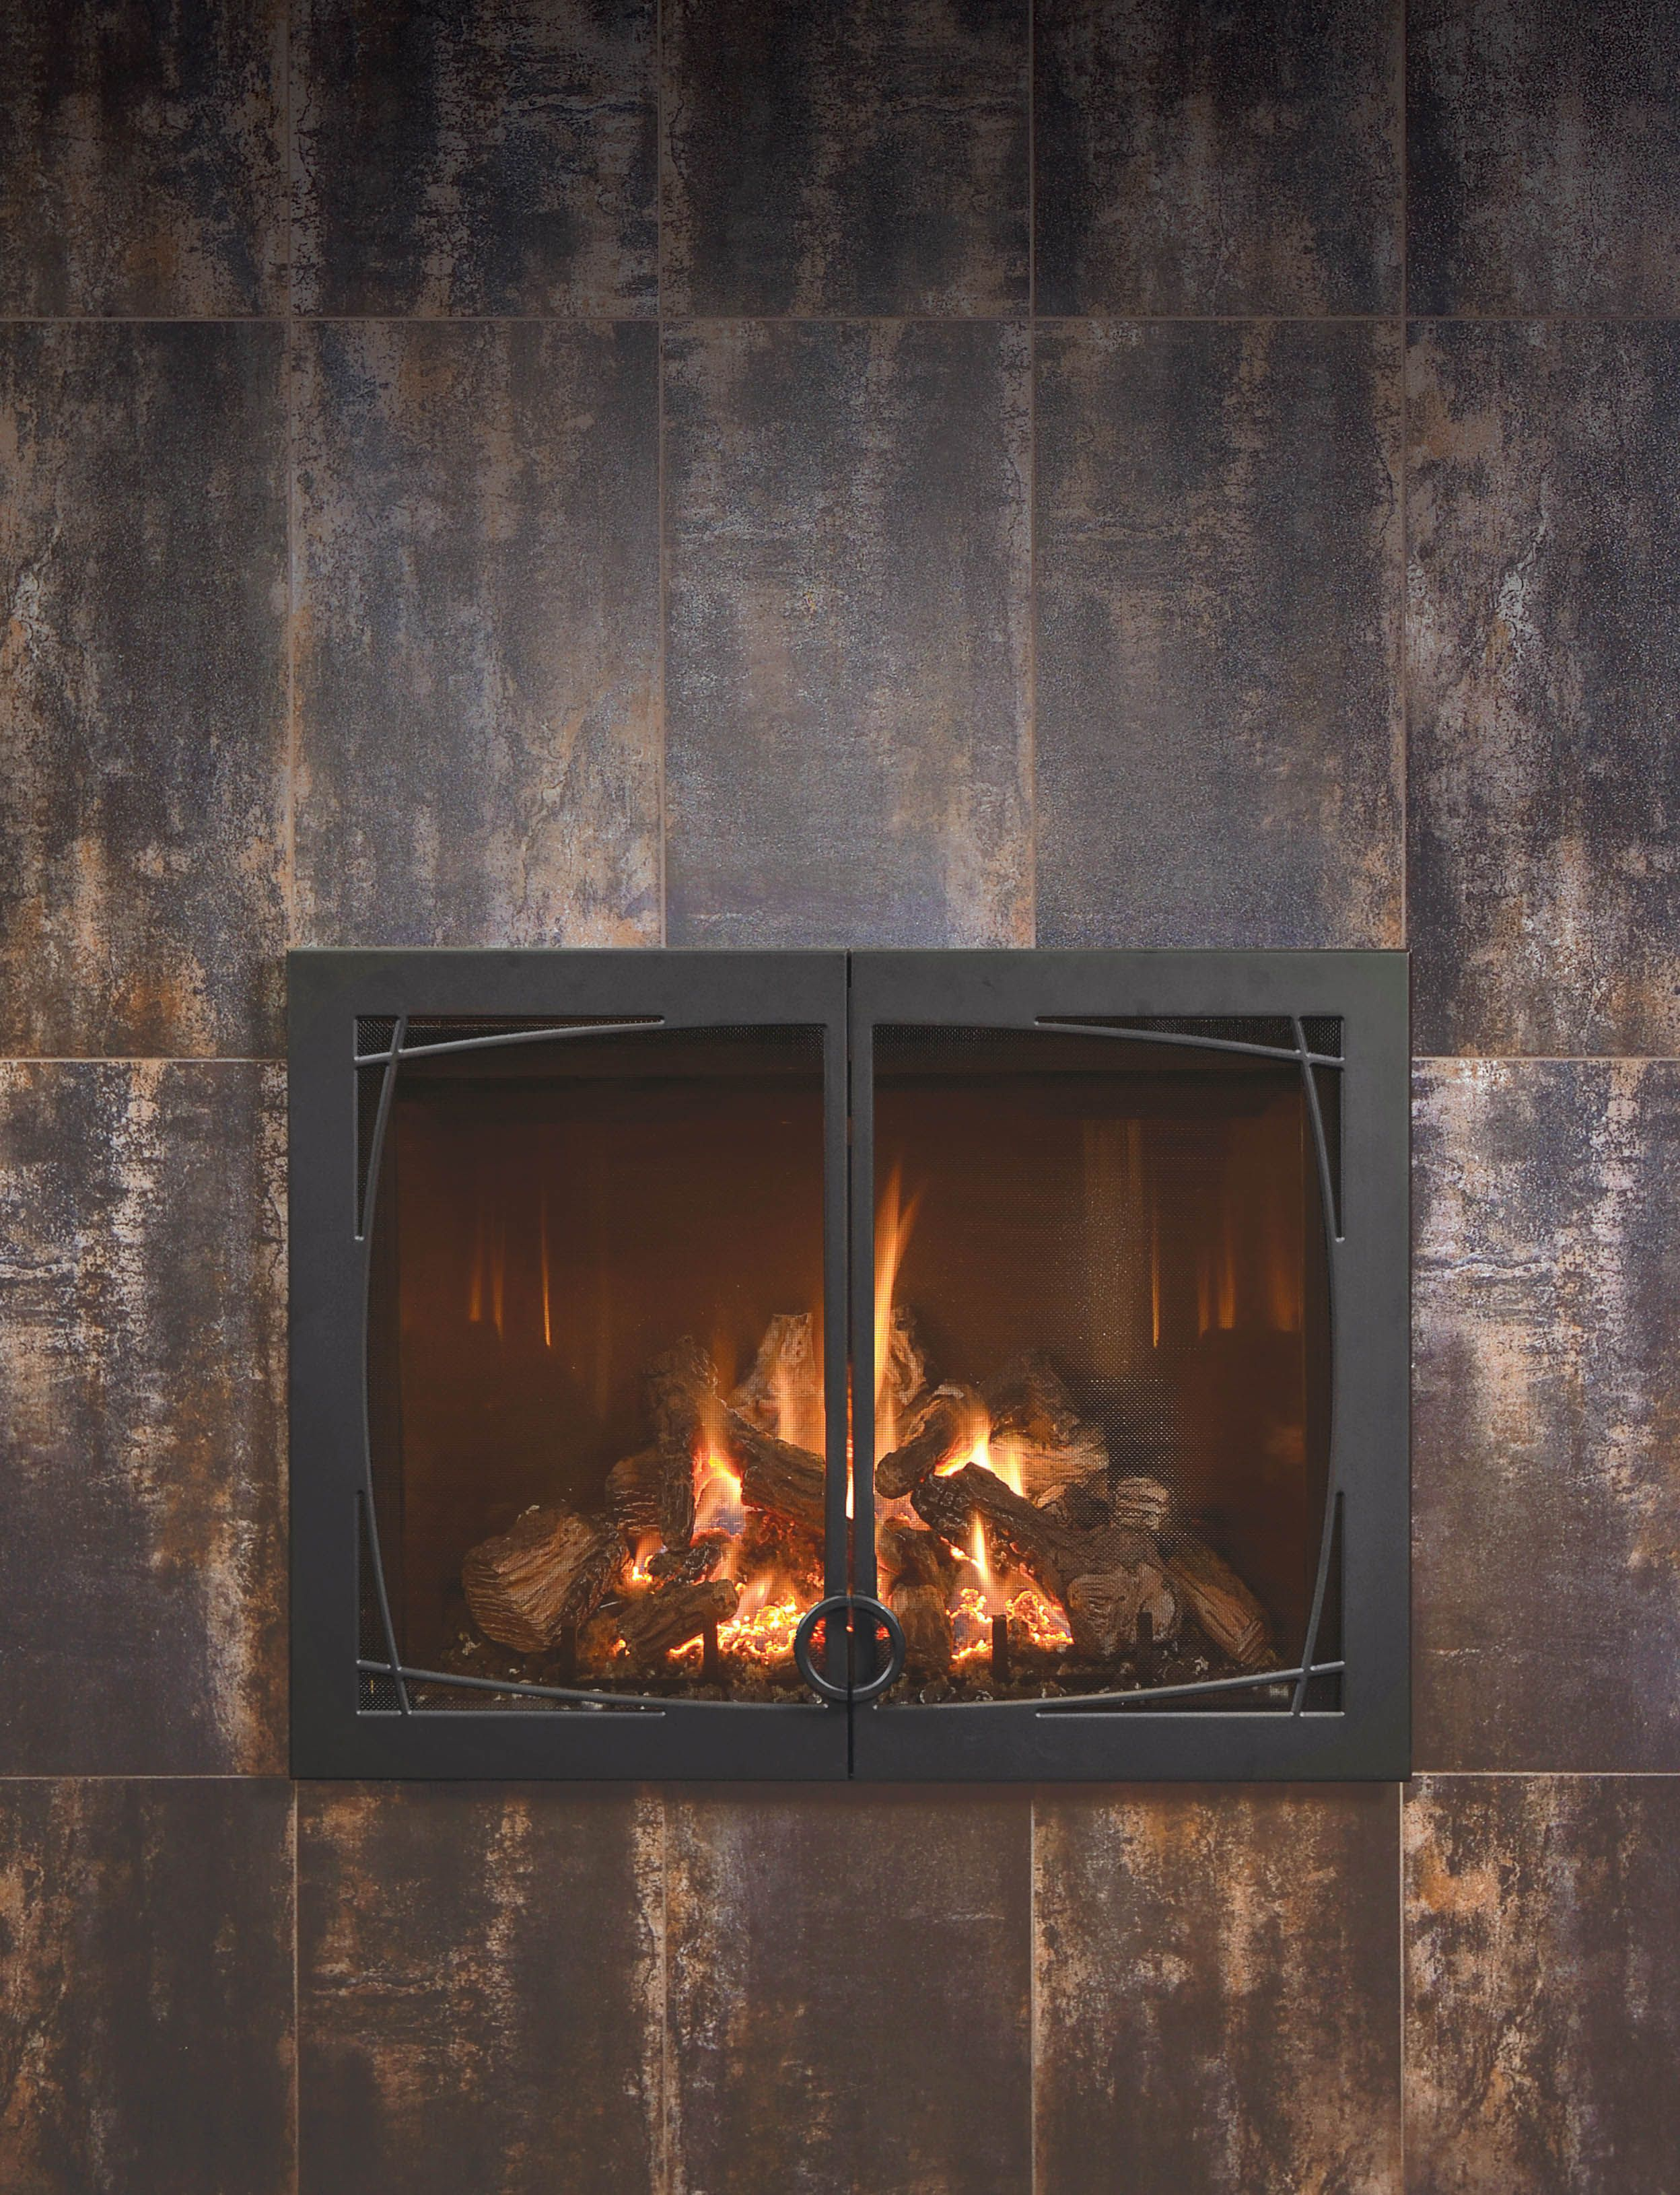 the mendota fullview gas fireplace puts the focus back on the fire